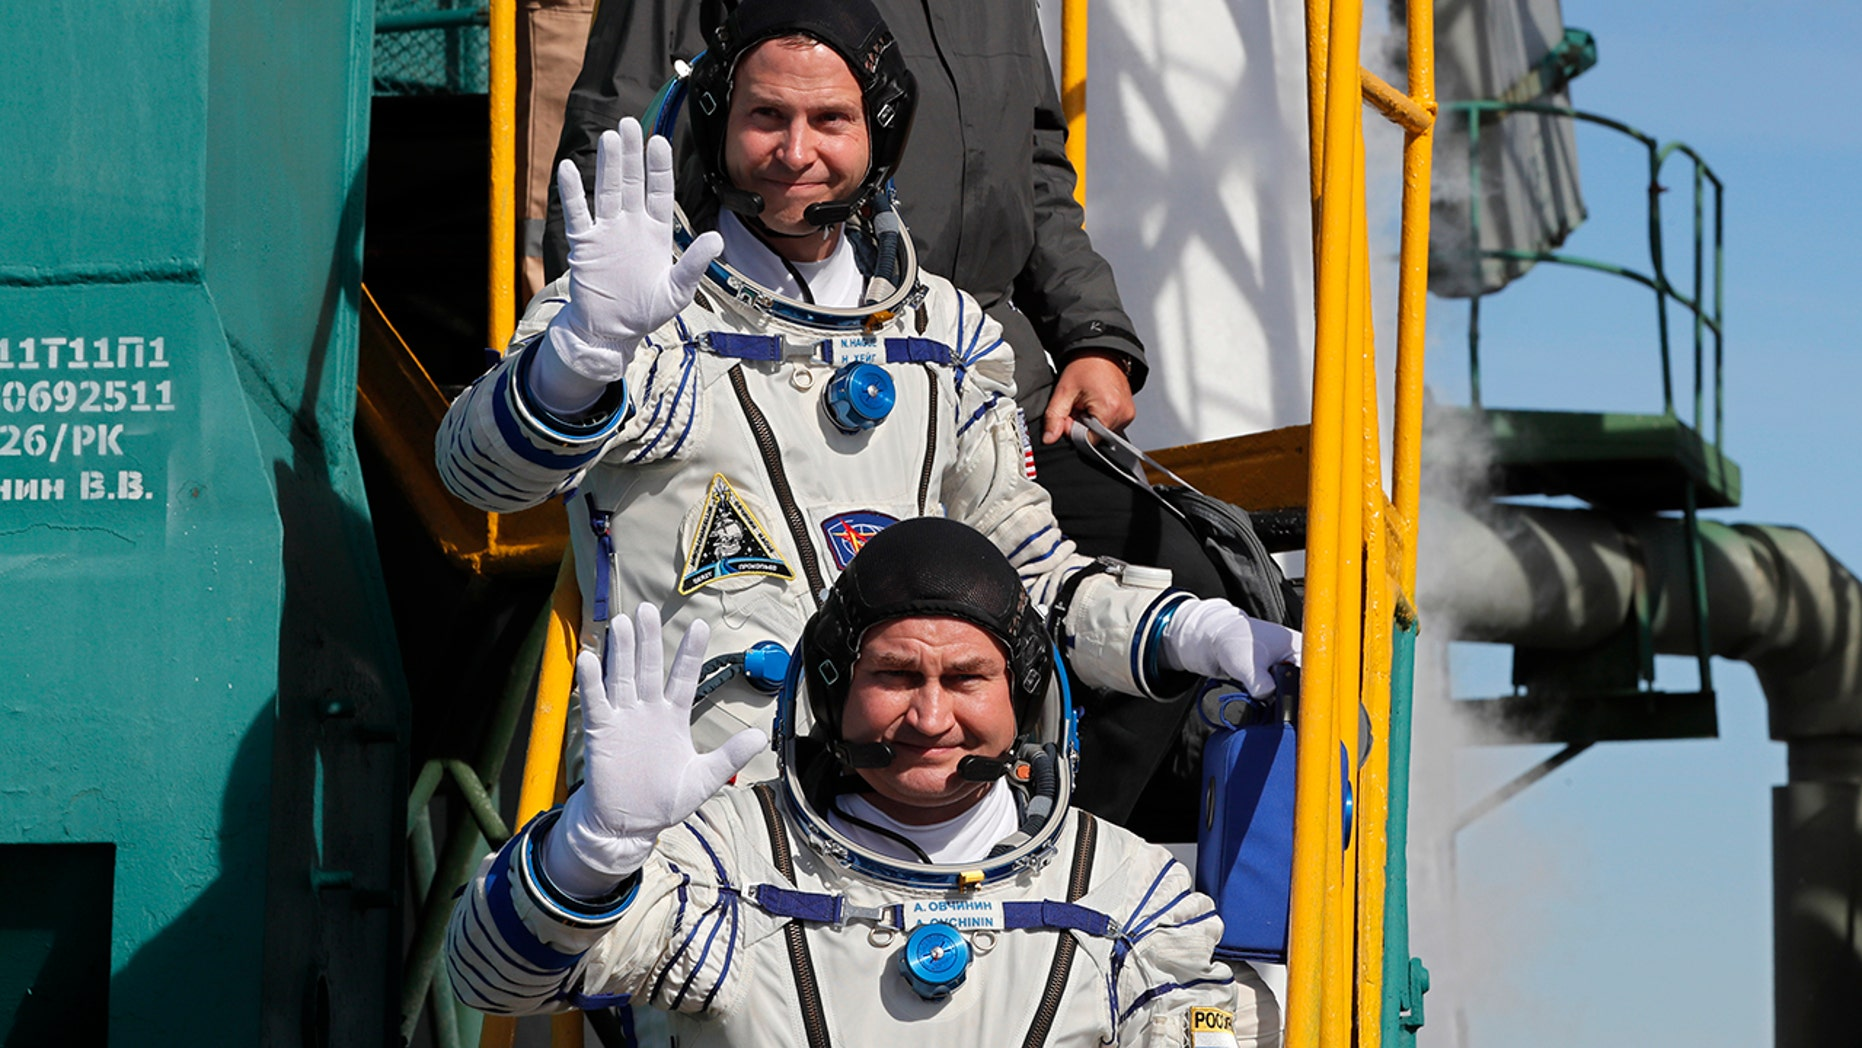 Rocket failure astronauts will go back into space - Russian official